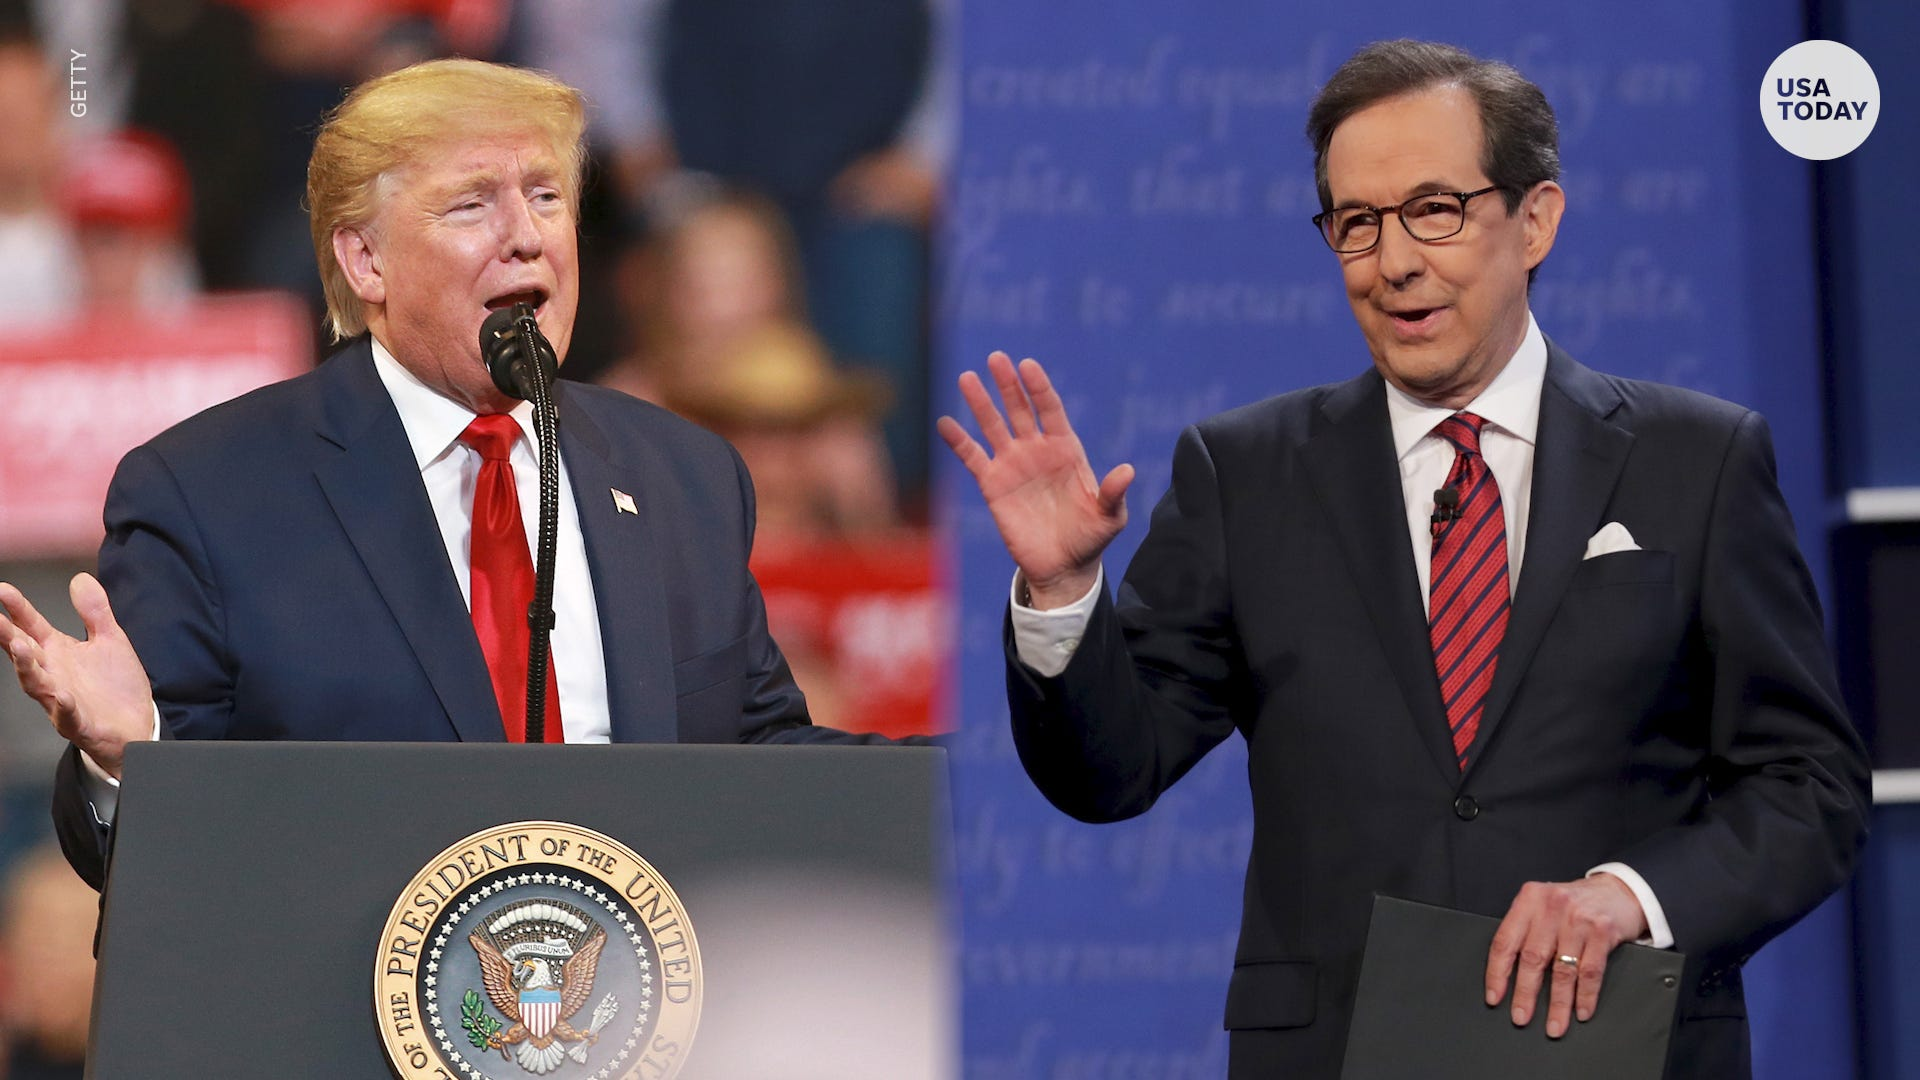 Chris Wallace S Initial Reaction To Trump Biden Debate This Is Great